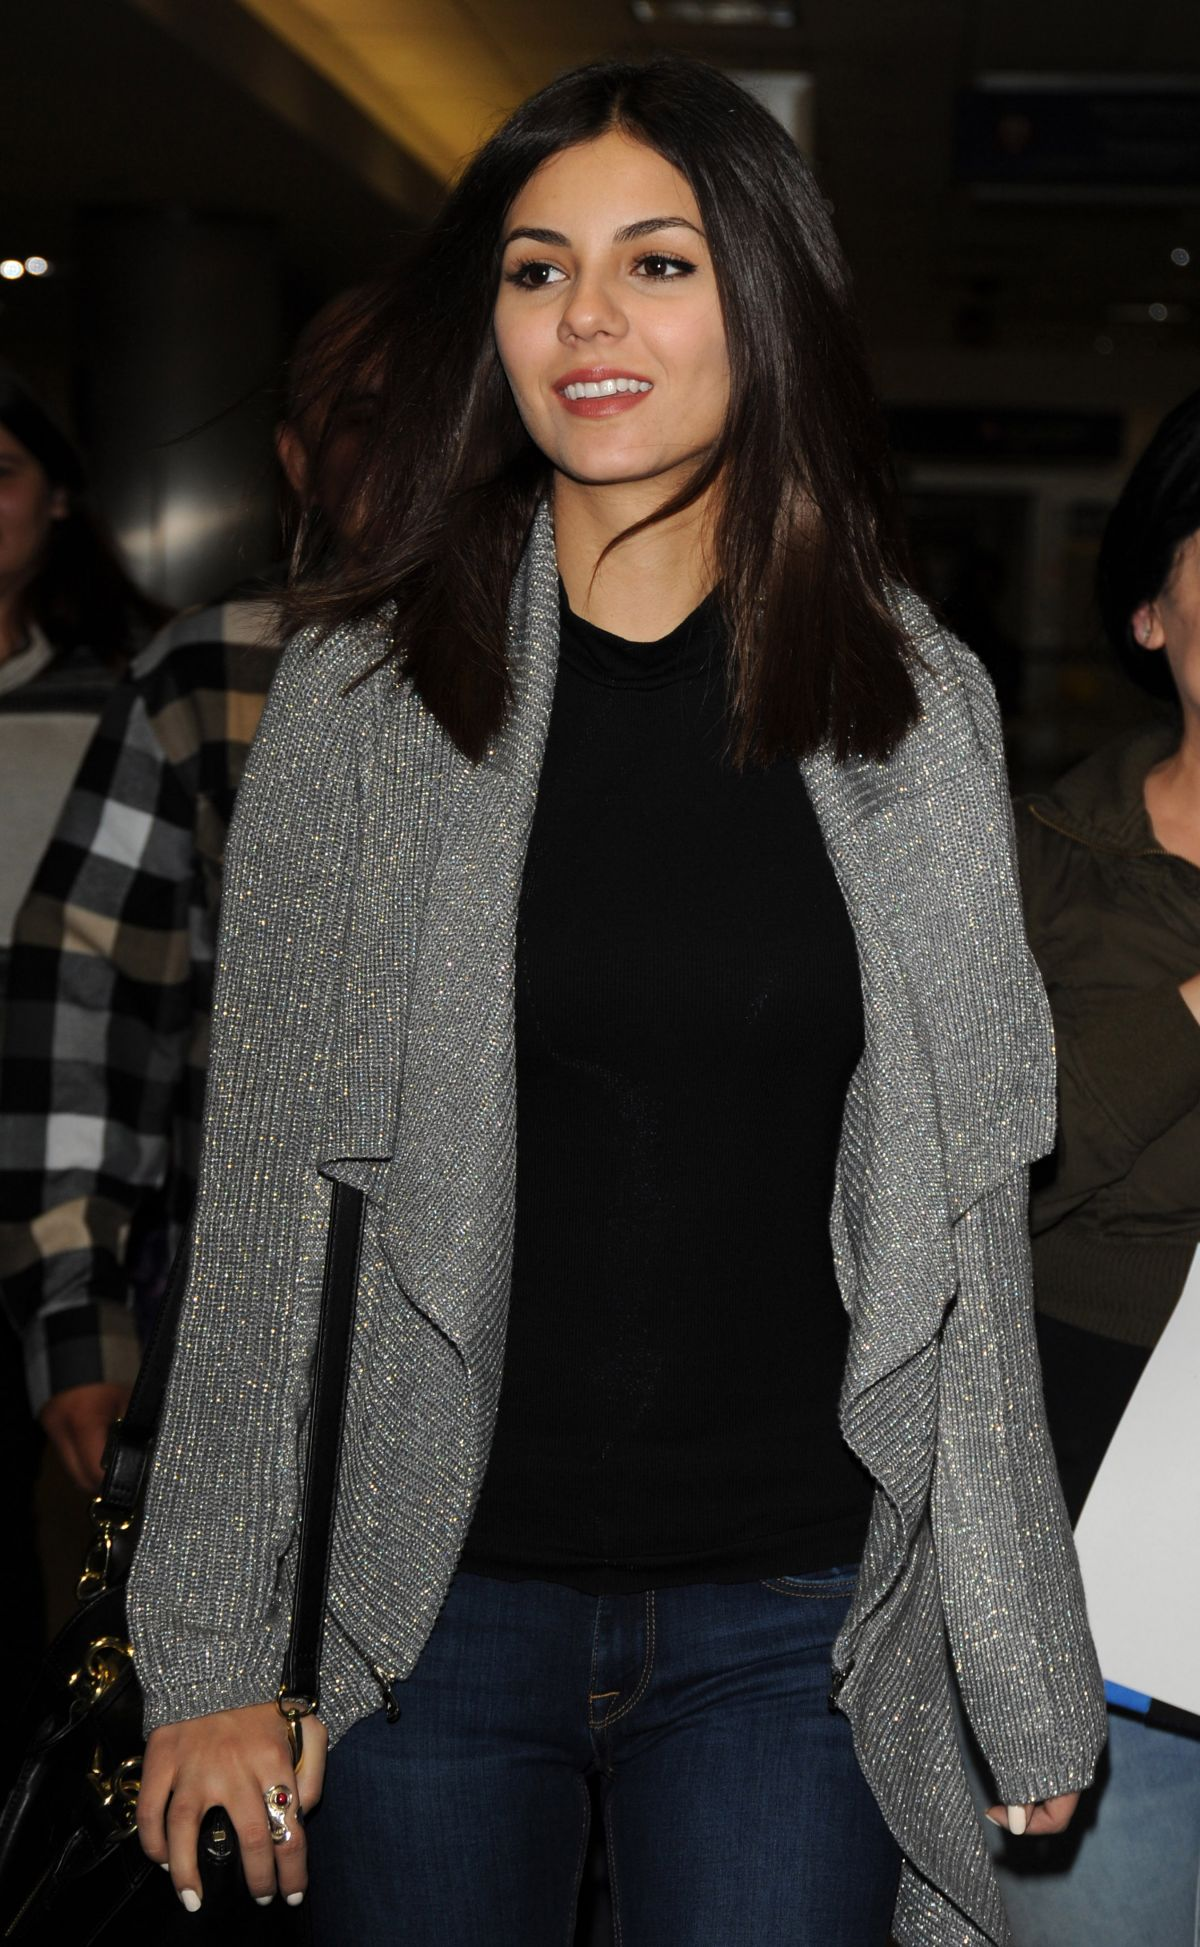 VICTORIA JUSTICE at LAX Airport in Los Angeles 1801